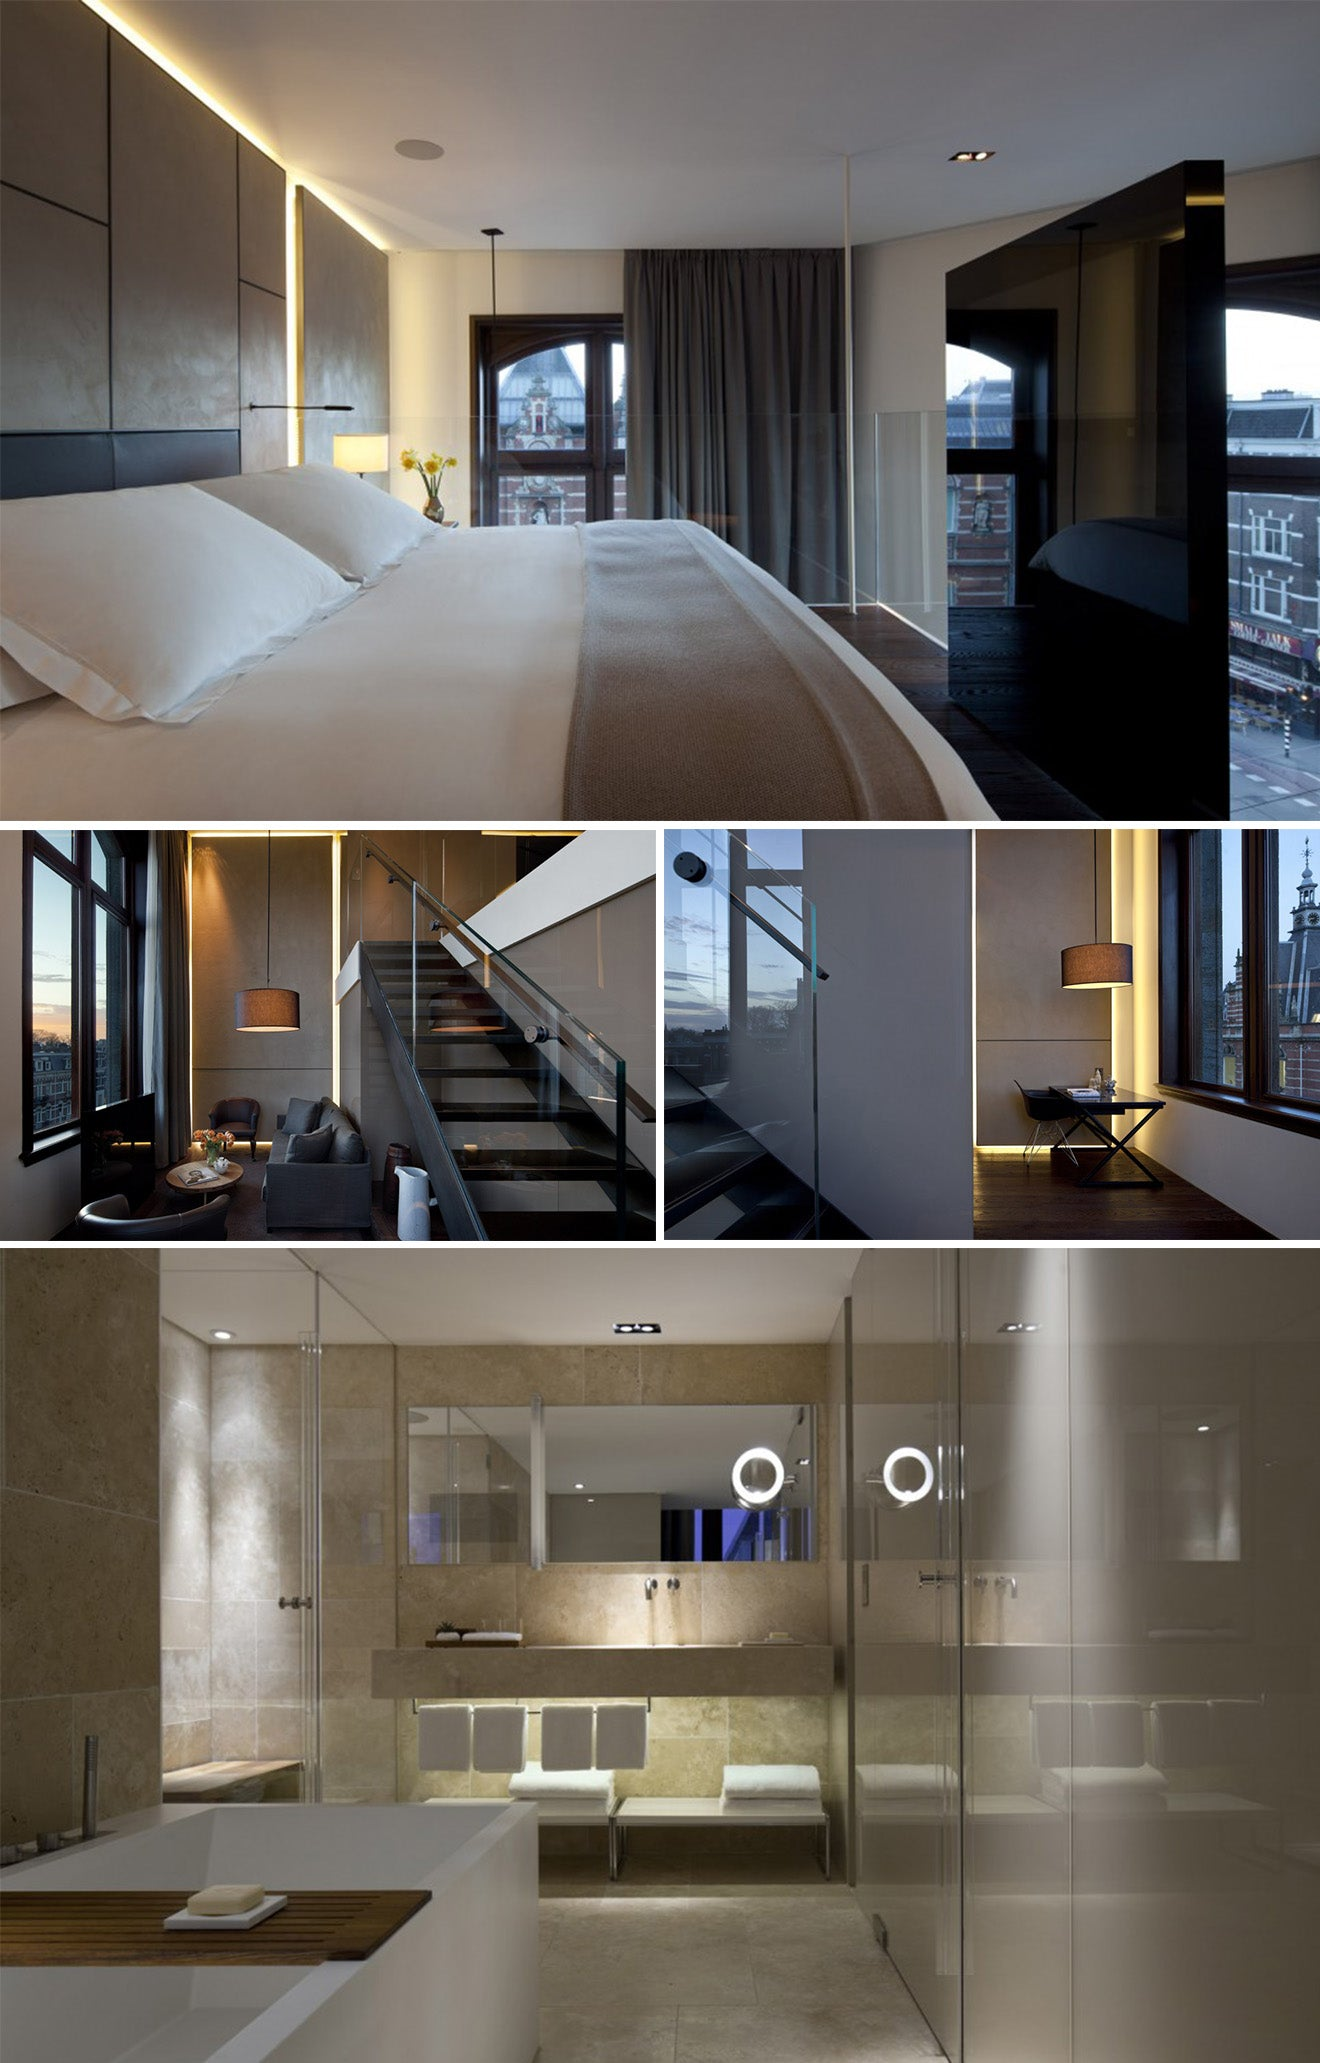 contemporary luxury hotel suite. The Corner Suite at the Conservatorium Amsterdam